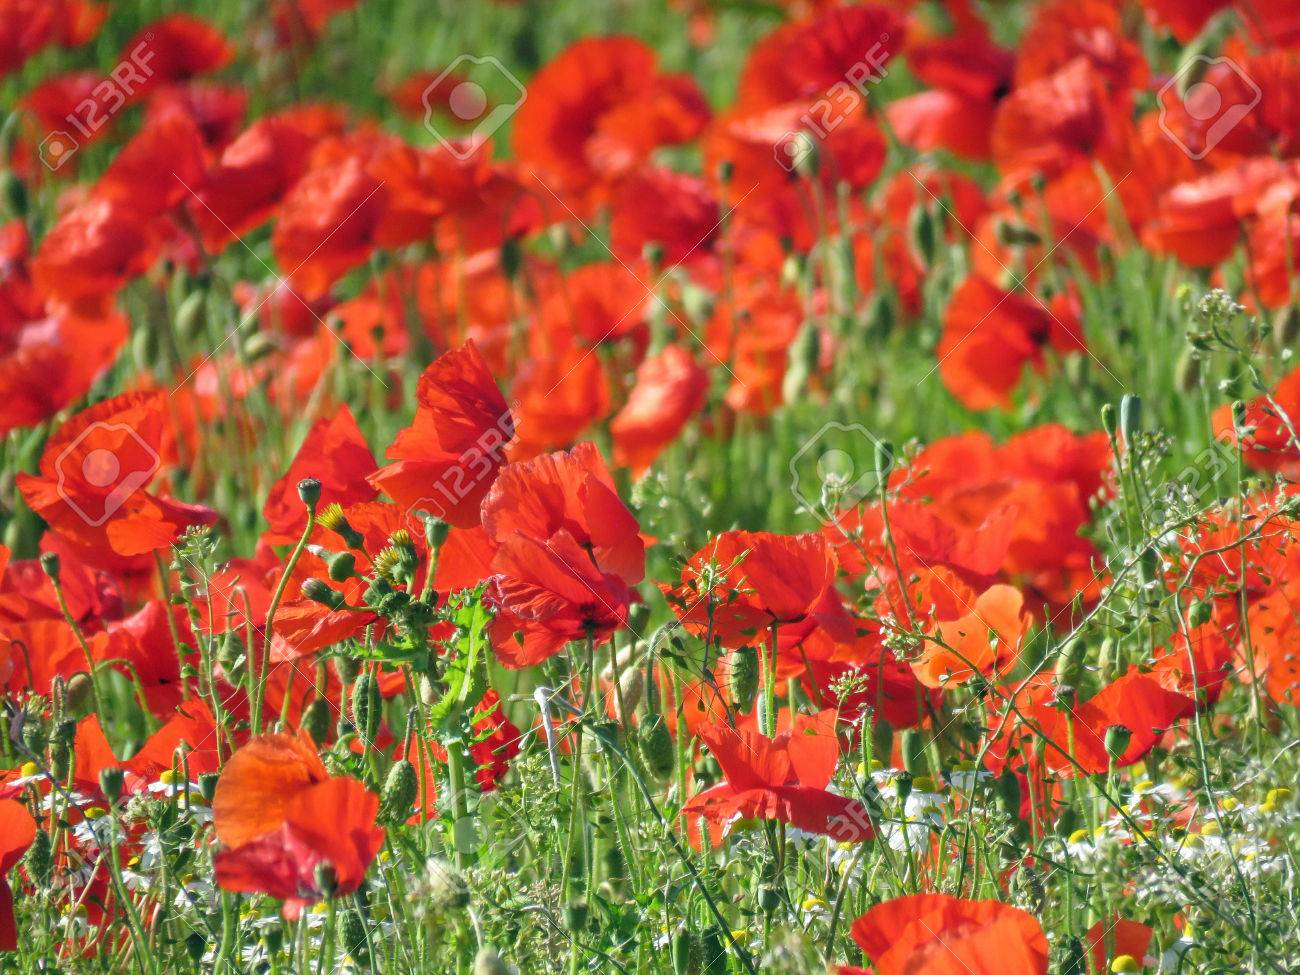 A meadow full of poppies and grasses in rural English countryside Standard-Bild - 82552569